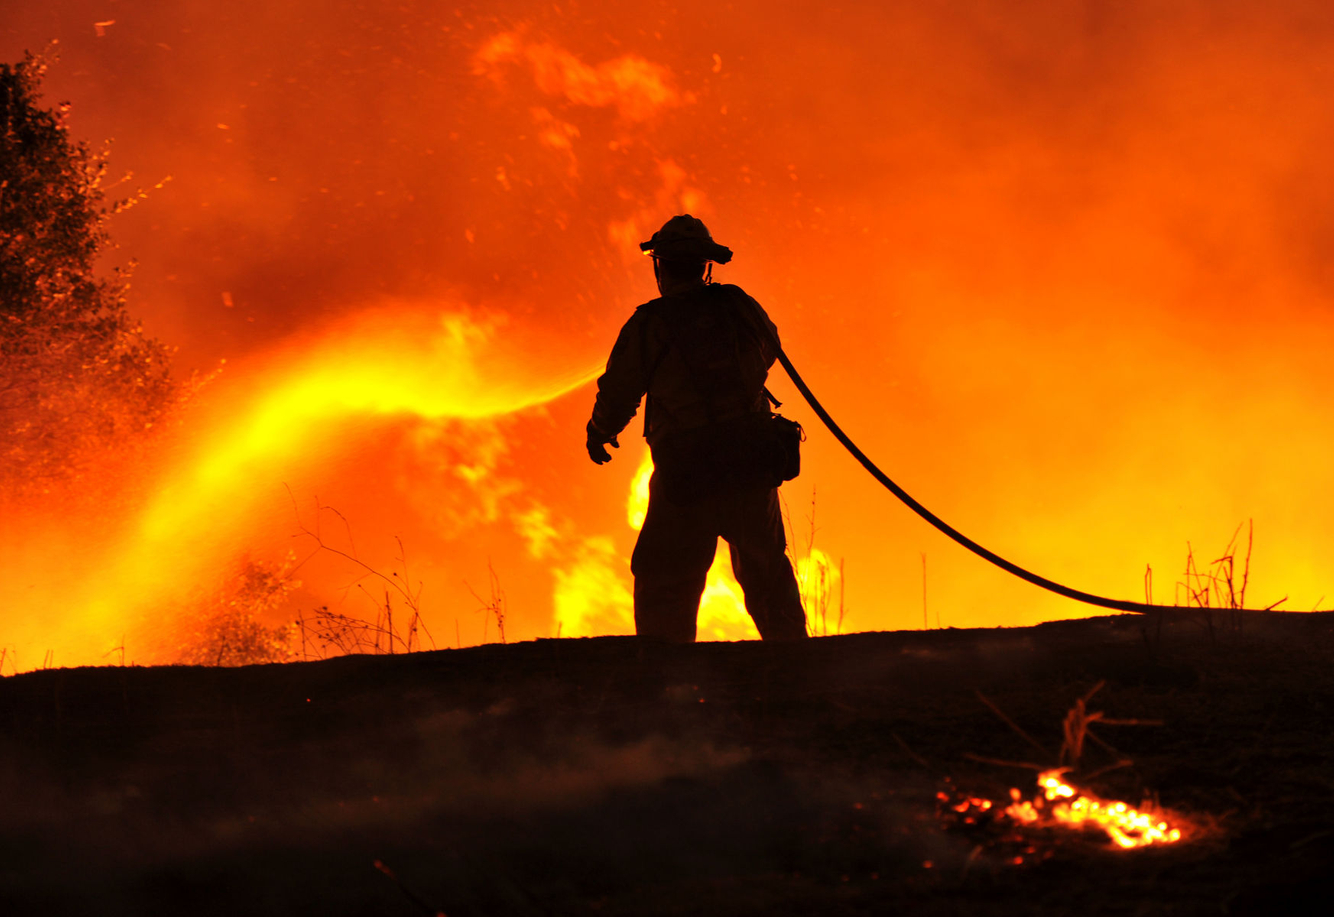 A lone firefighter sprays water on flames